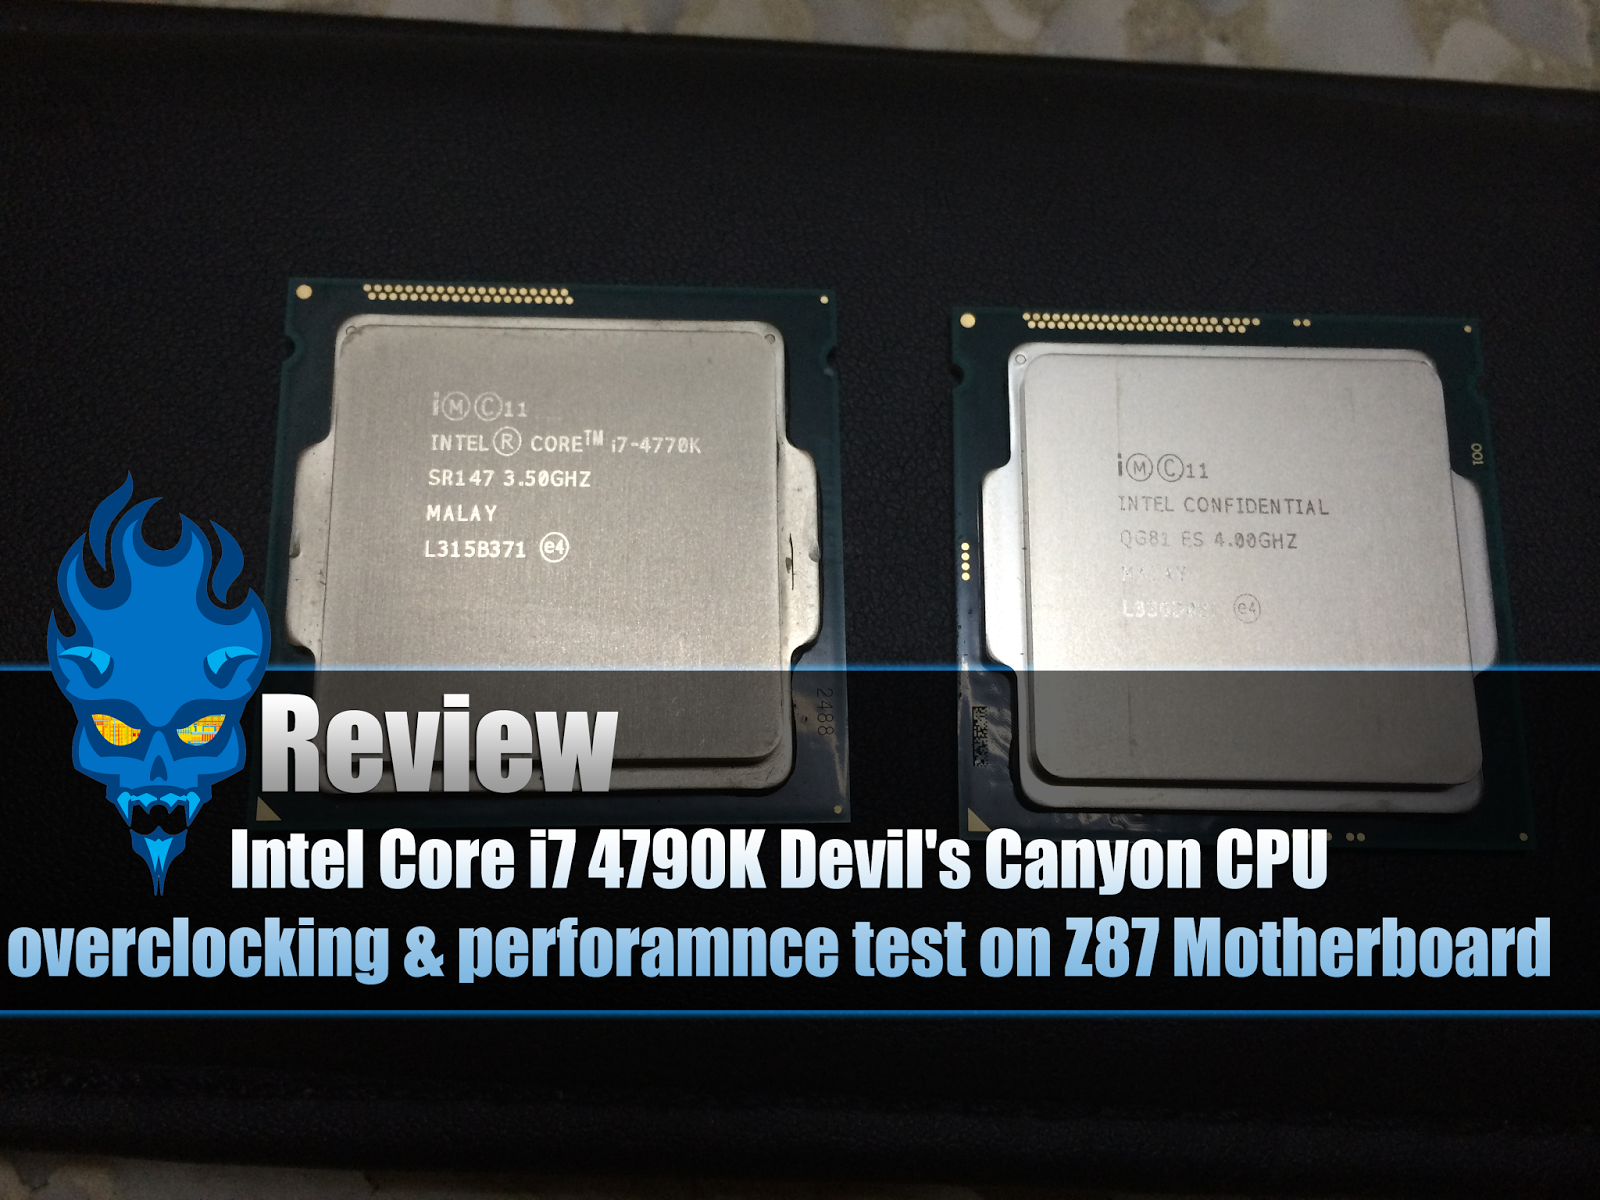 Review: Intel Core i7 4790K Devil's Canyon CPU on Z87 Motherboard